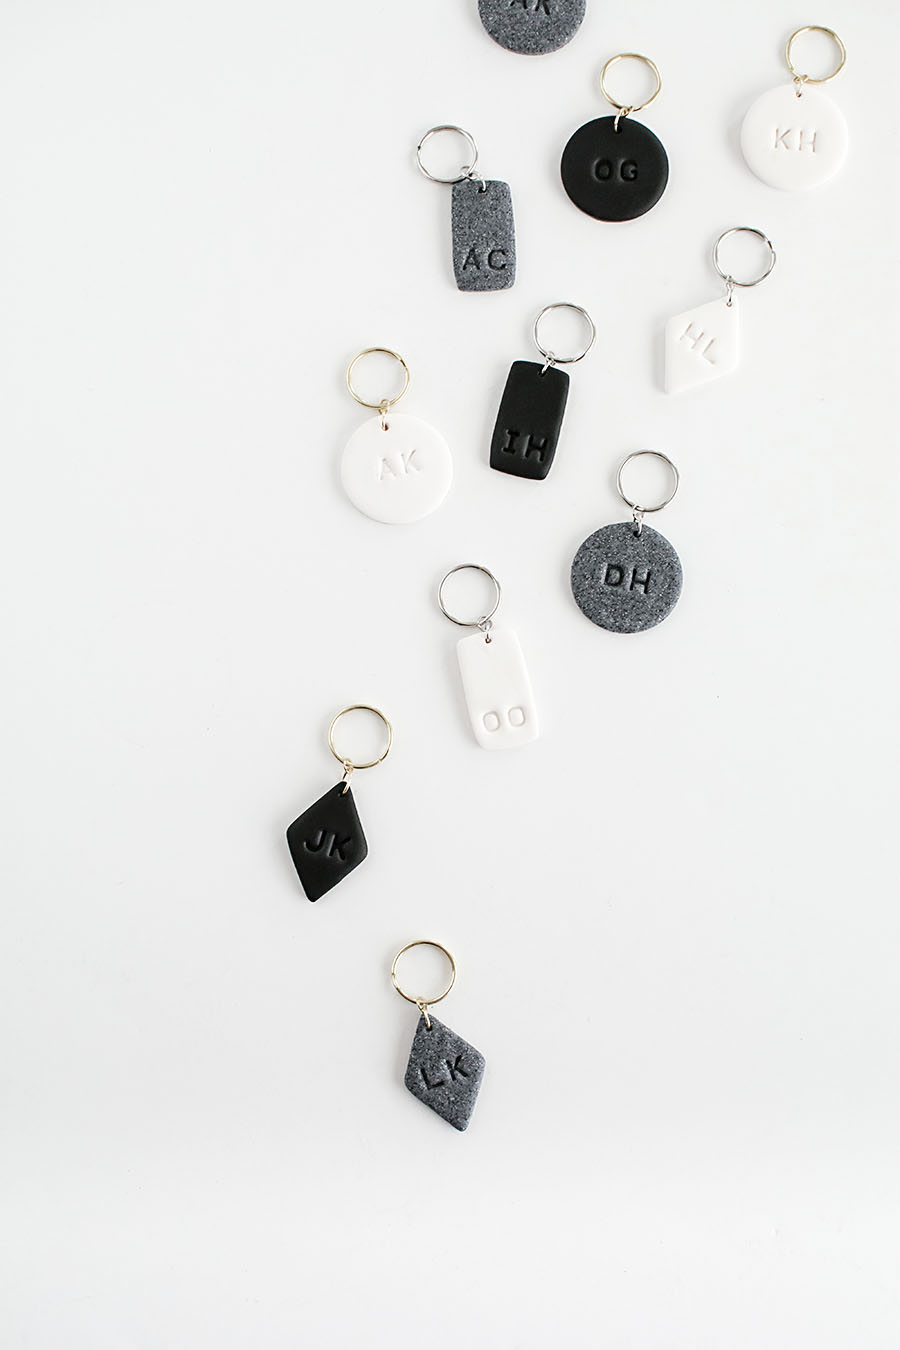 DIY- Monogram Clay Keychains